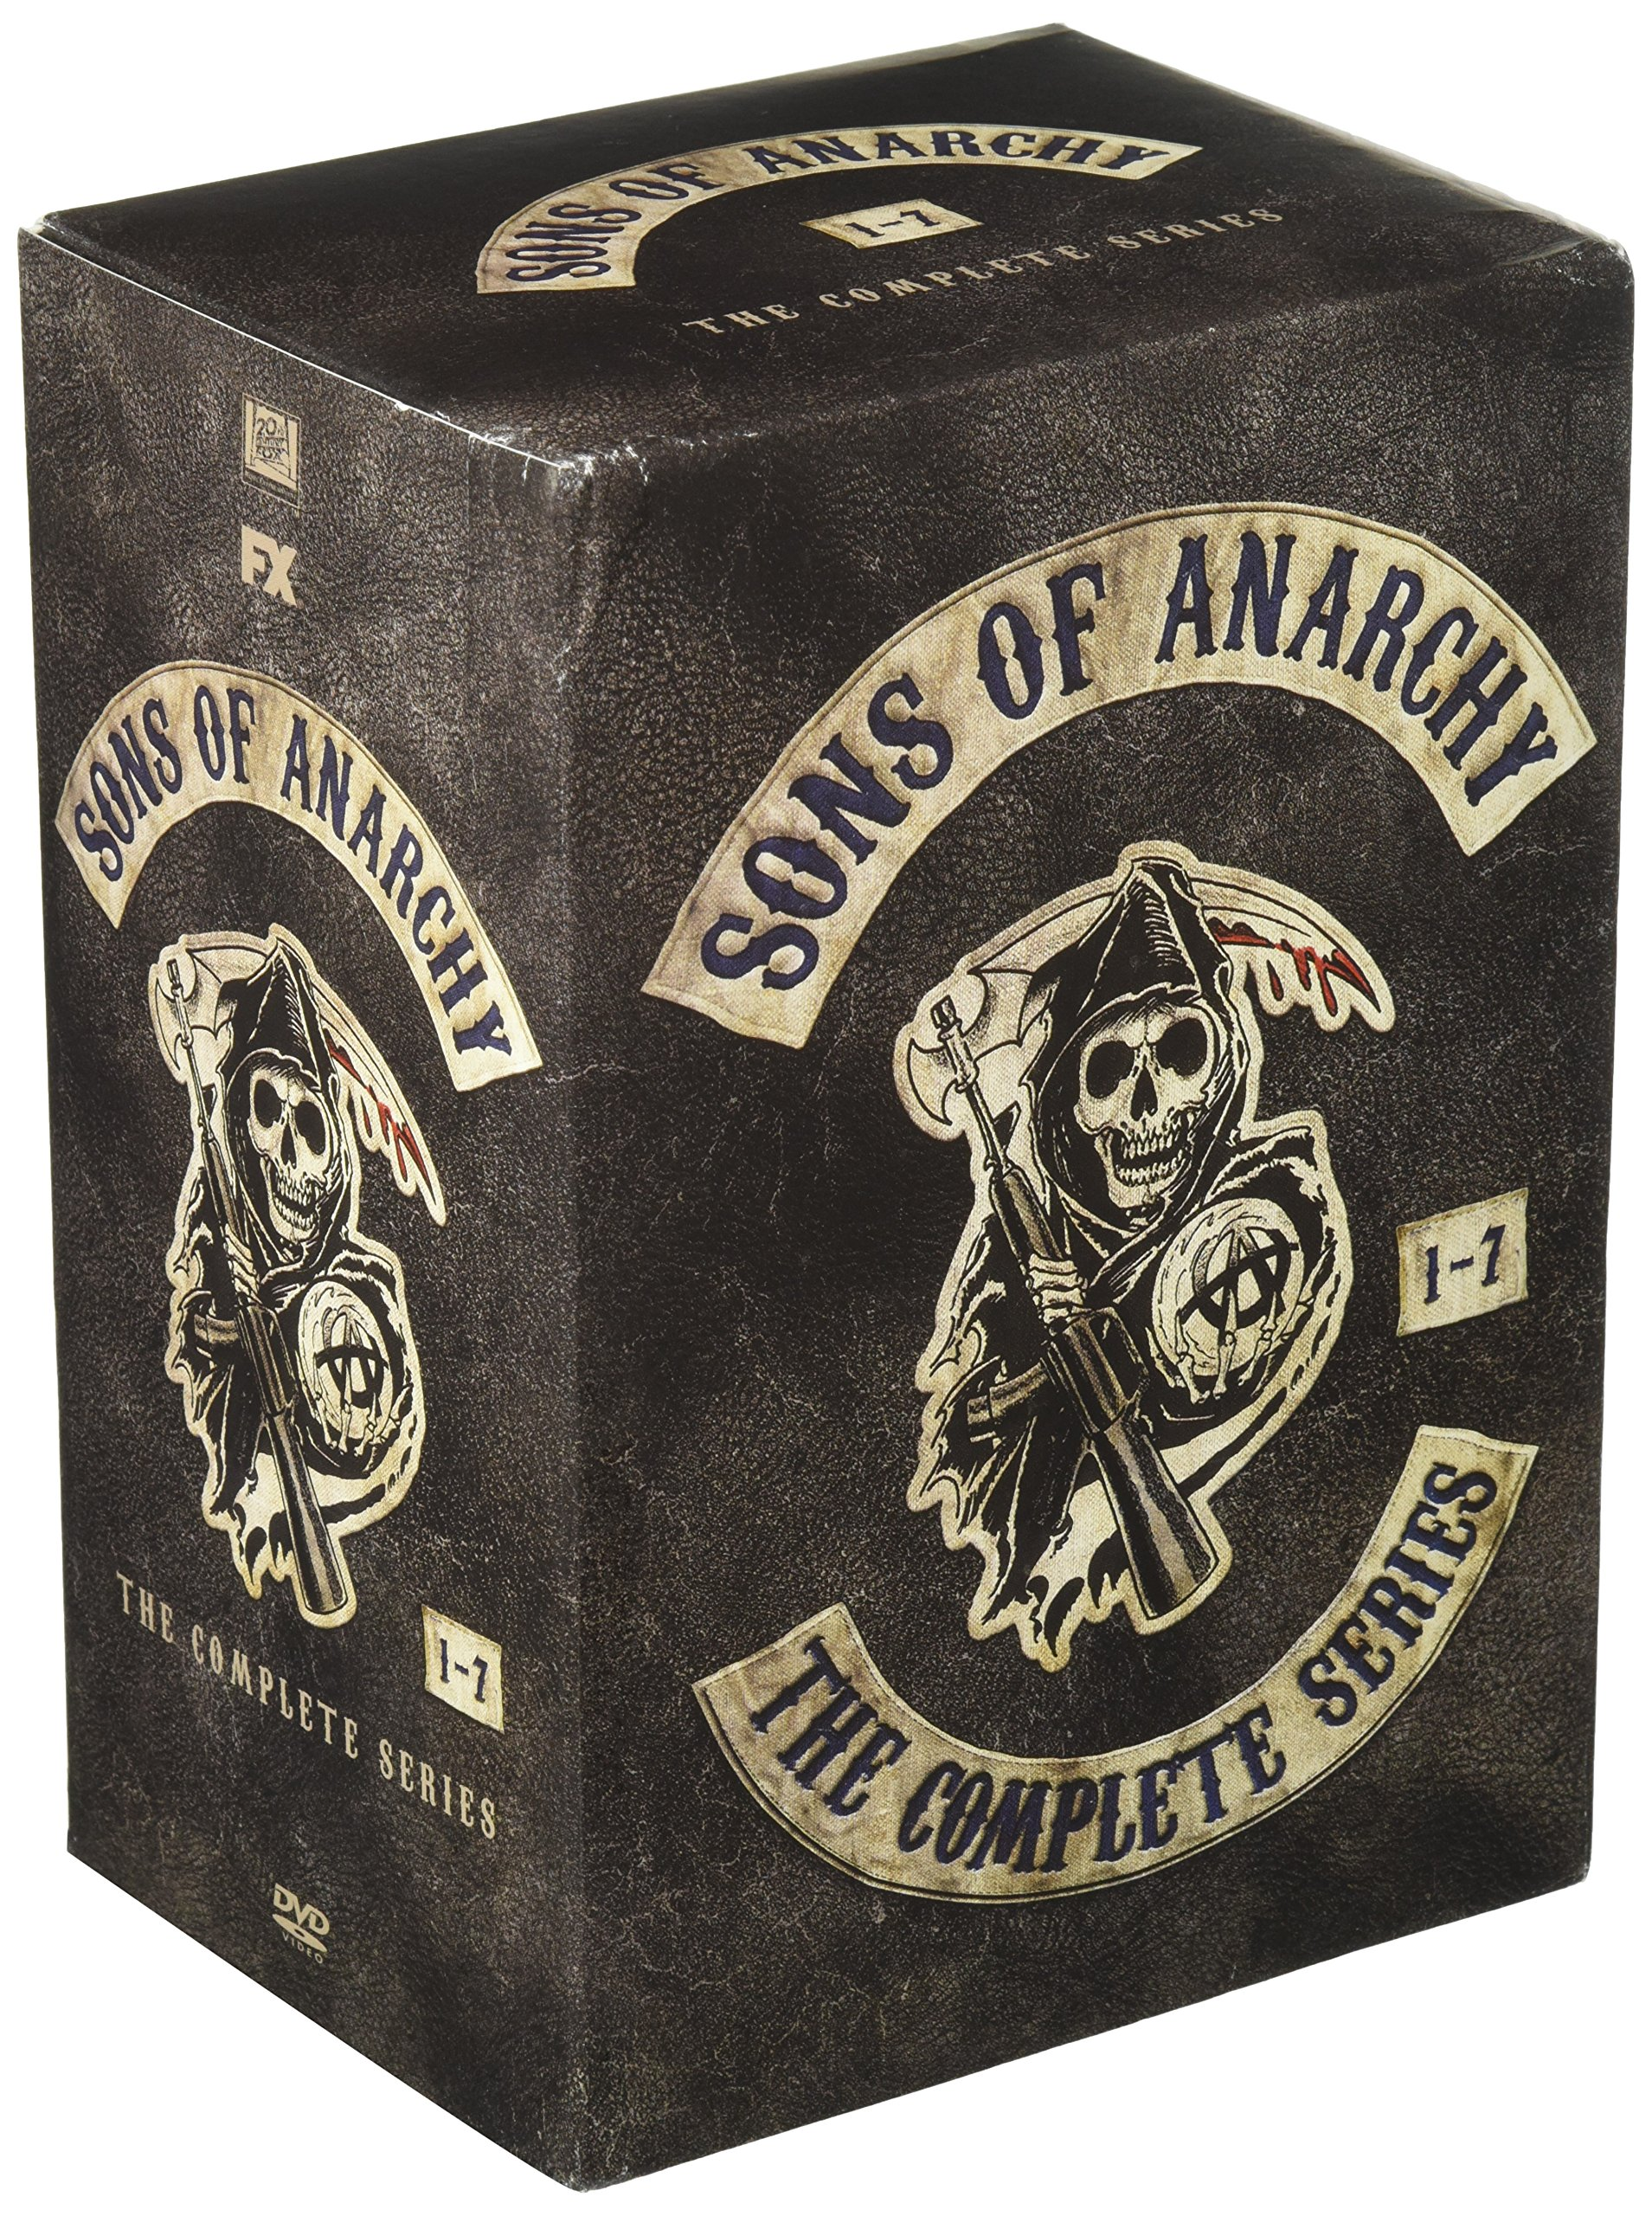 Sons of Anarchy The Complete Series by 20th Century Fox